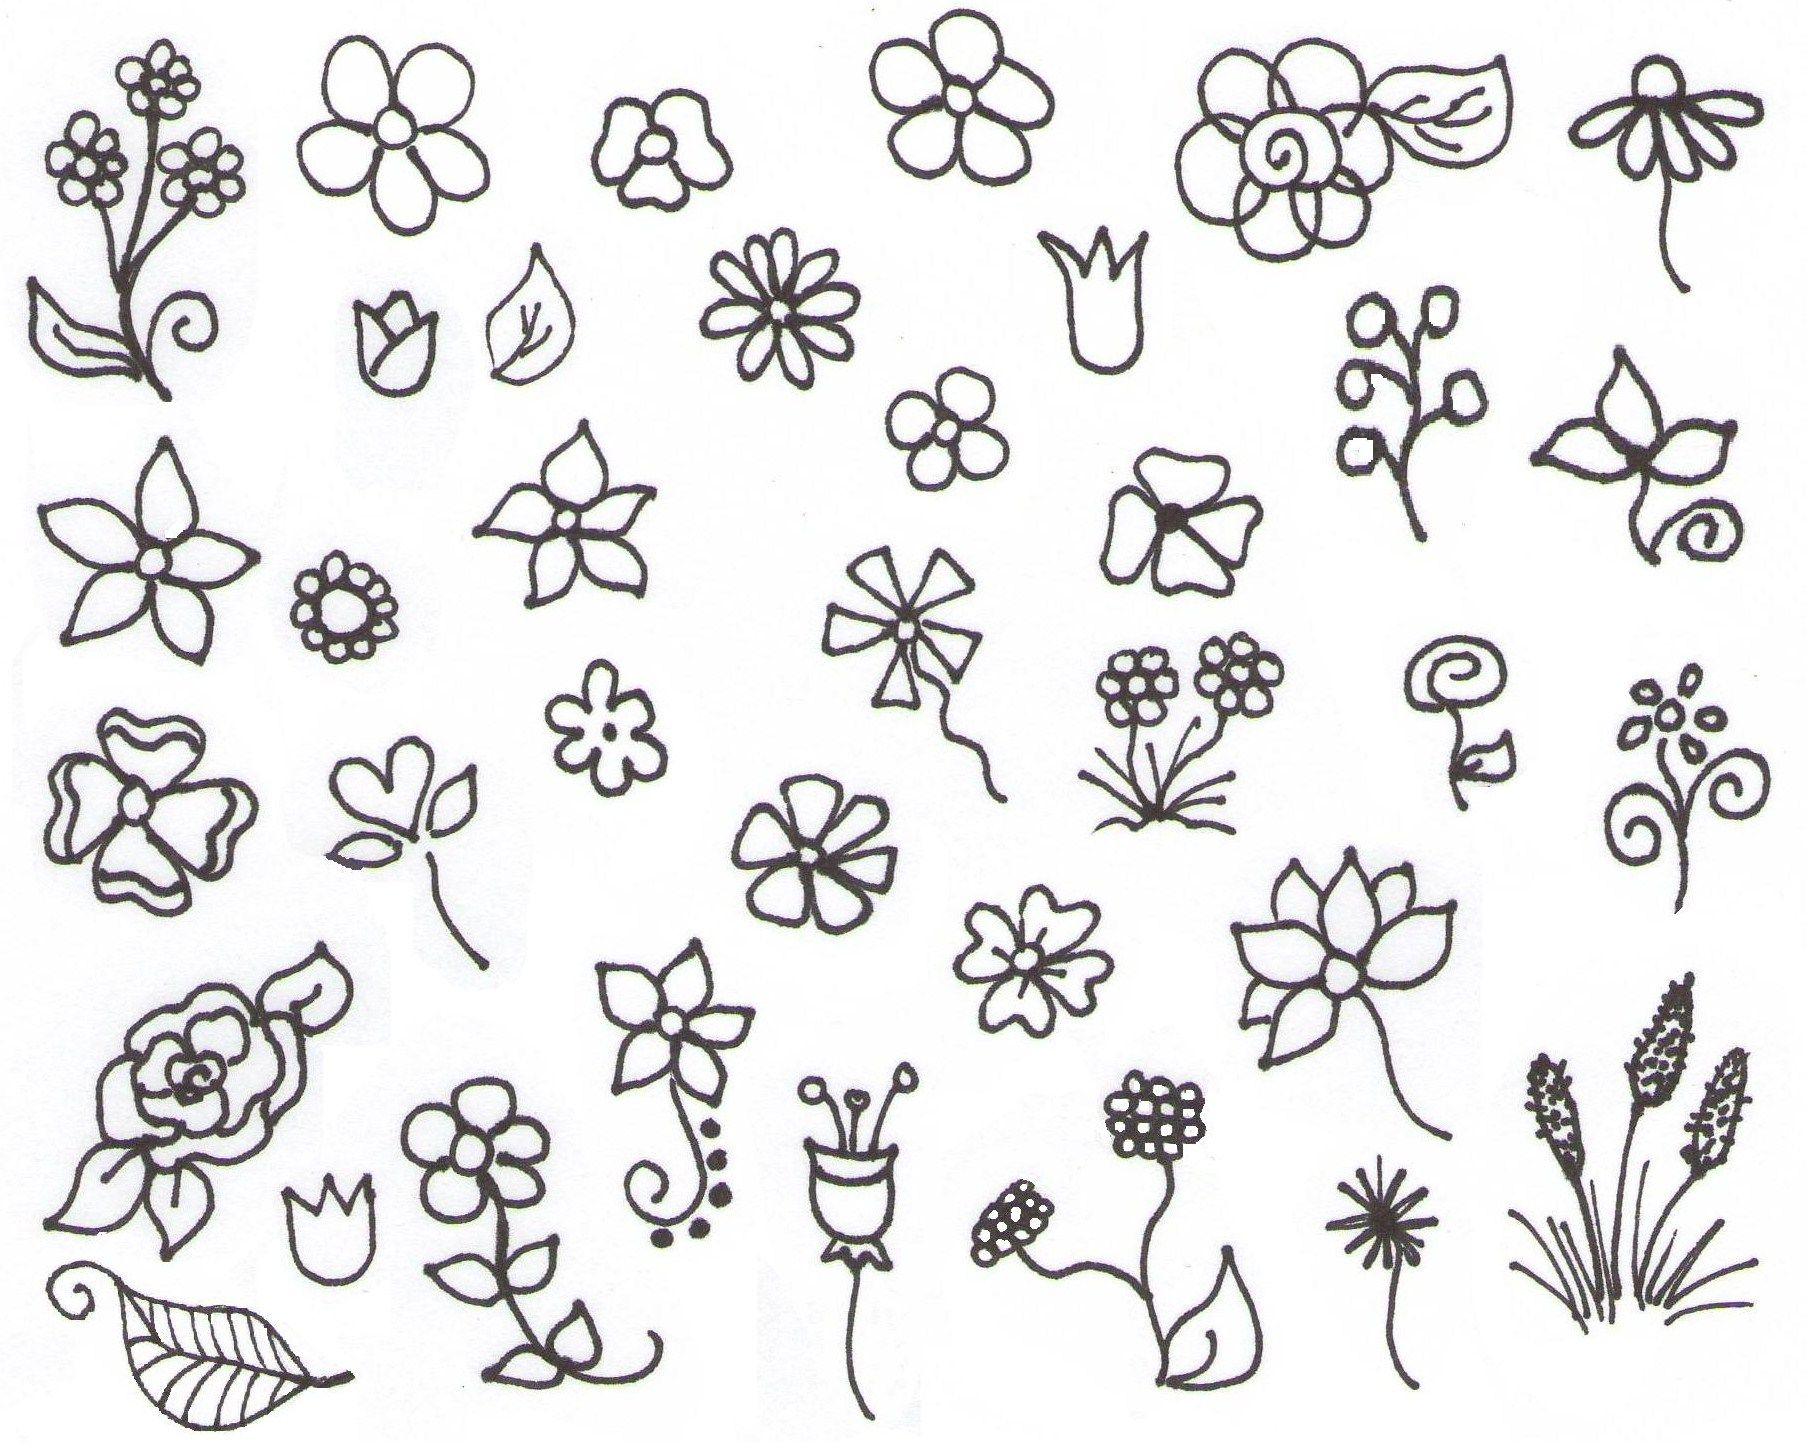 My inspiration flower doodles pinterest flower for How to draw a basic flower